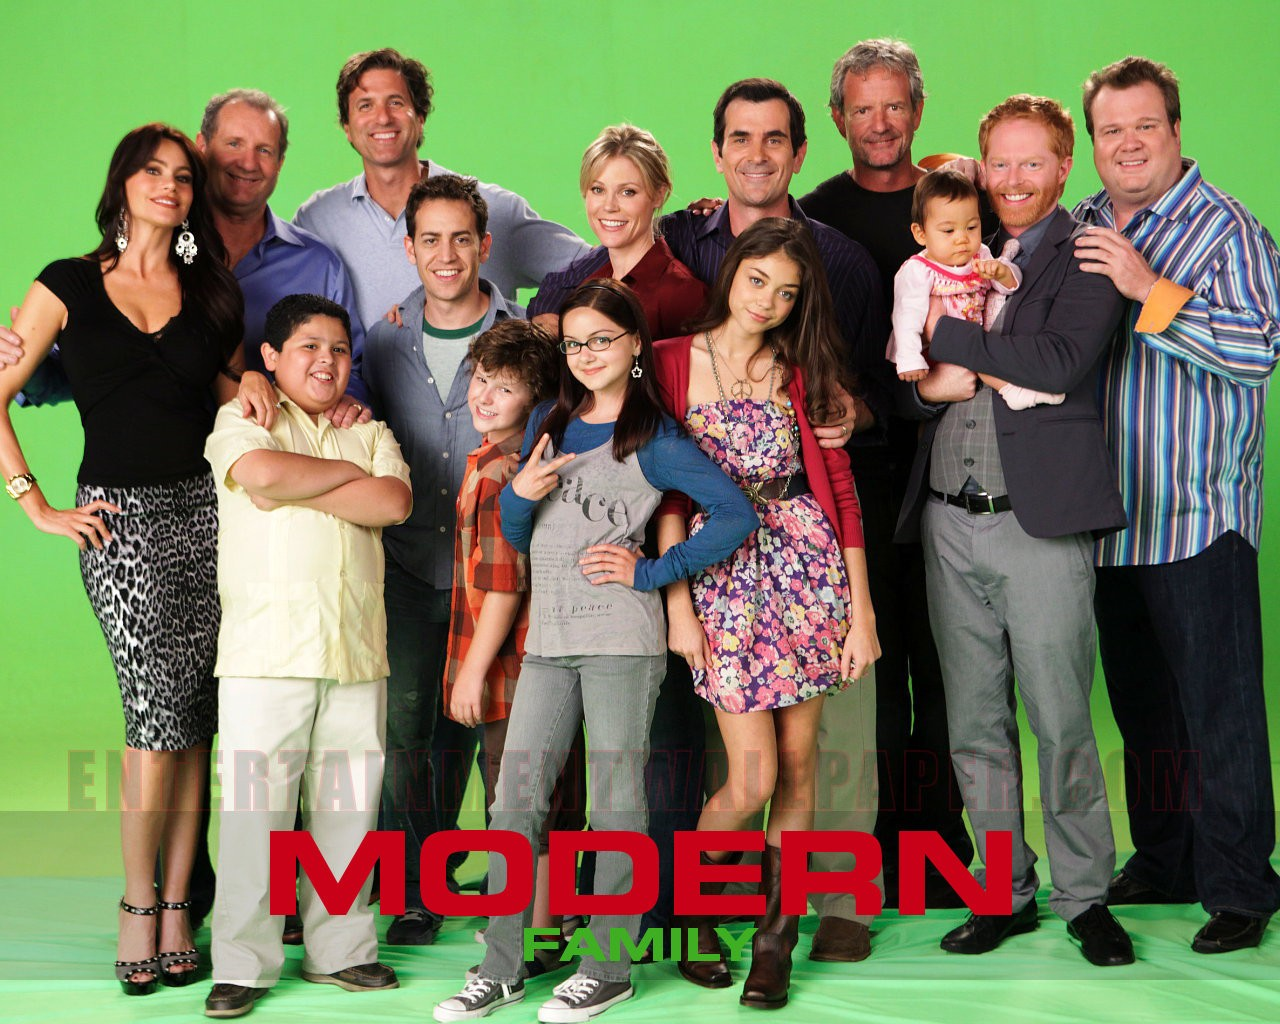 modern family images wallpaper - photo #15